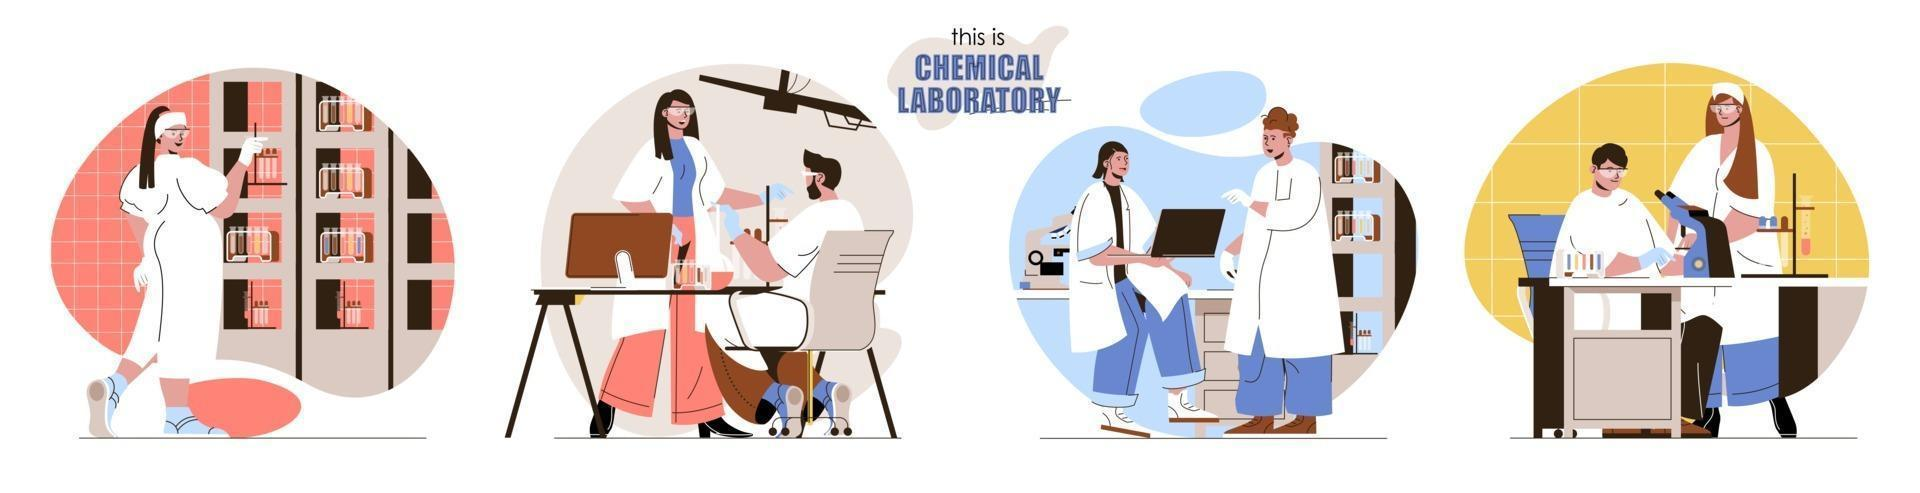 This is Chemical Laboratory concept scenes set vector